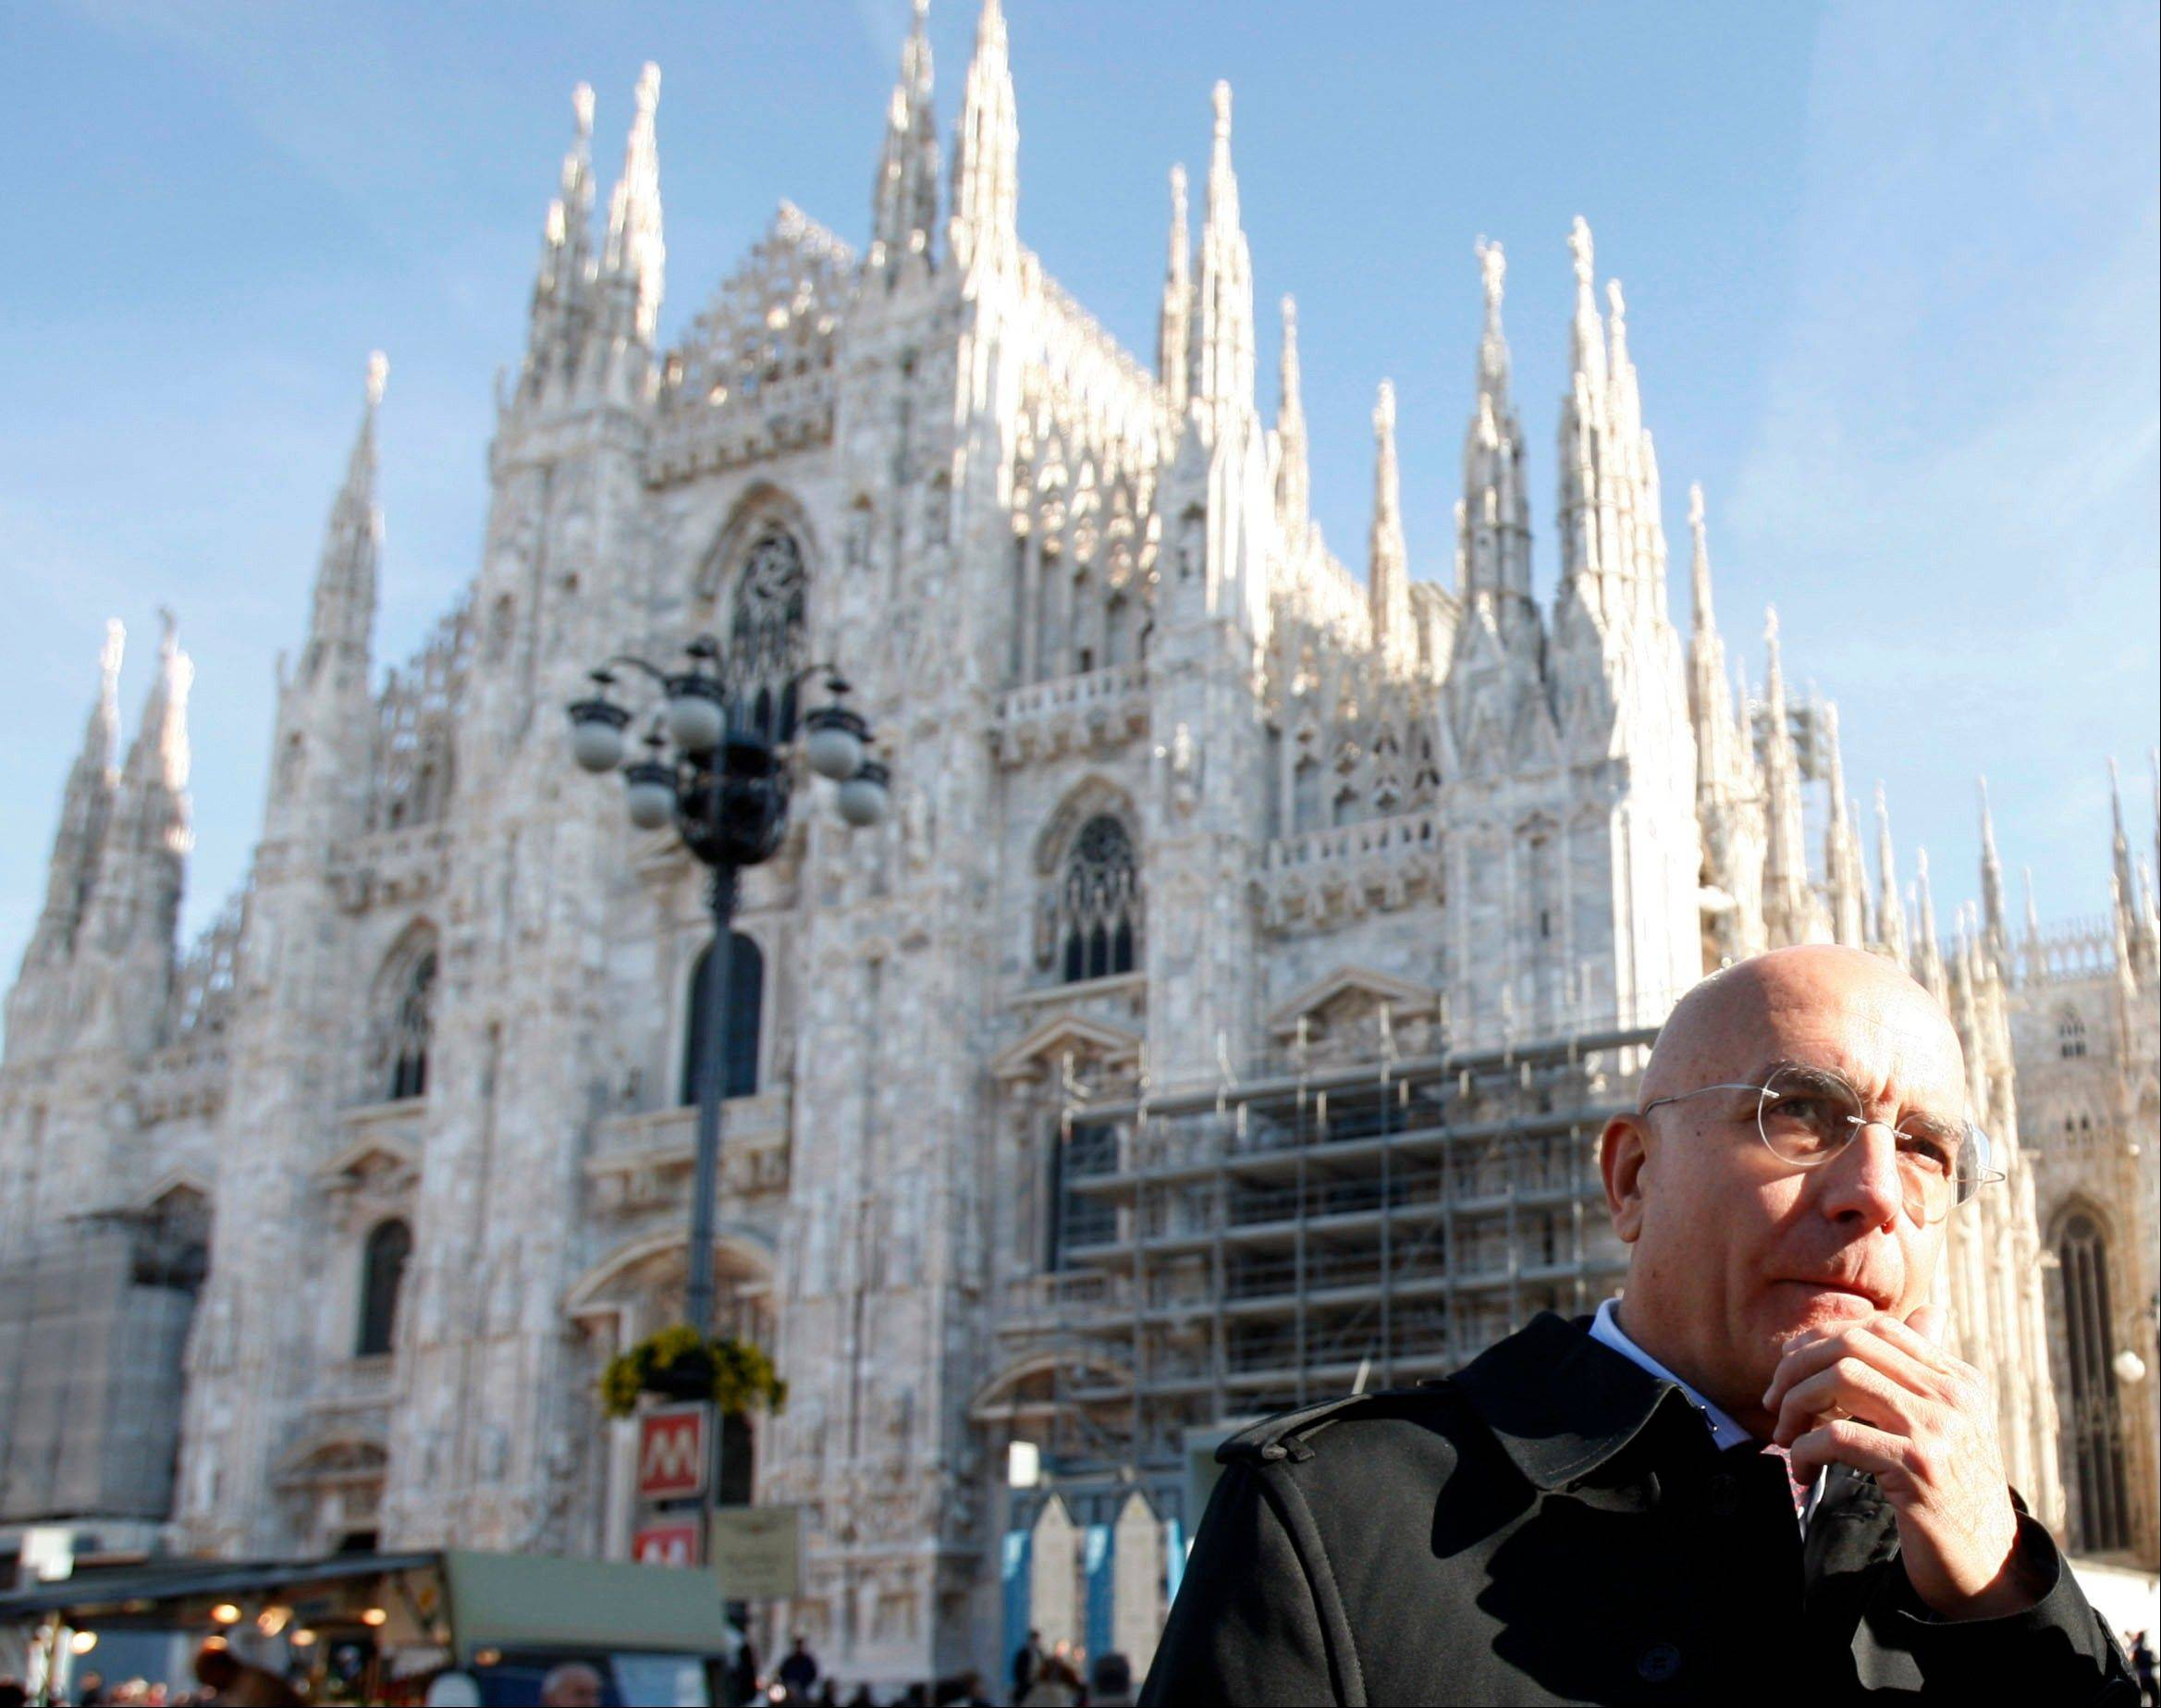 Gabriele Albertini stands in front of the Milan gothic cathedral in Italy. Lombardy, Italy's most populous and economically productive region, is a key battleground in the upcoming national elections, with the regional race not only likely to determine who can most reliably govern the euro zone's third-largest economy but also testing emerging political alliances.